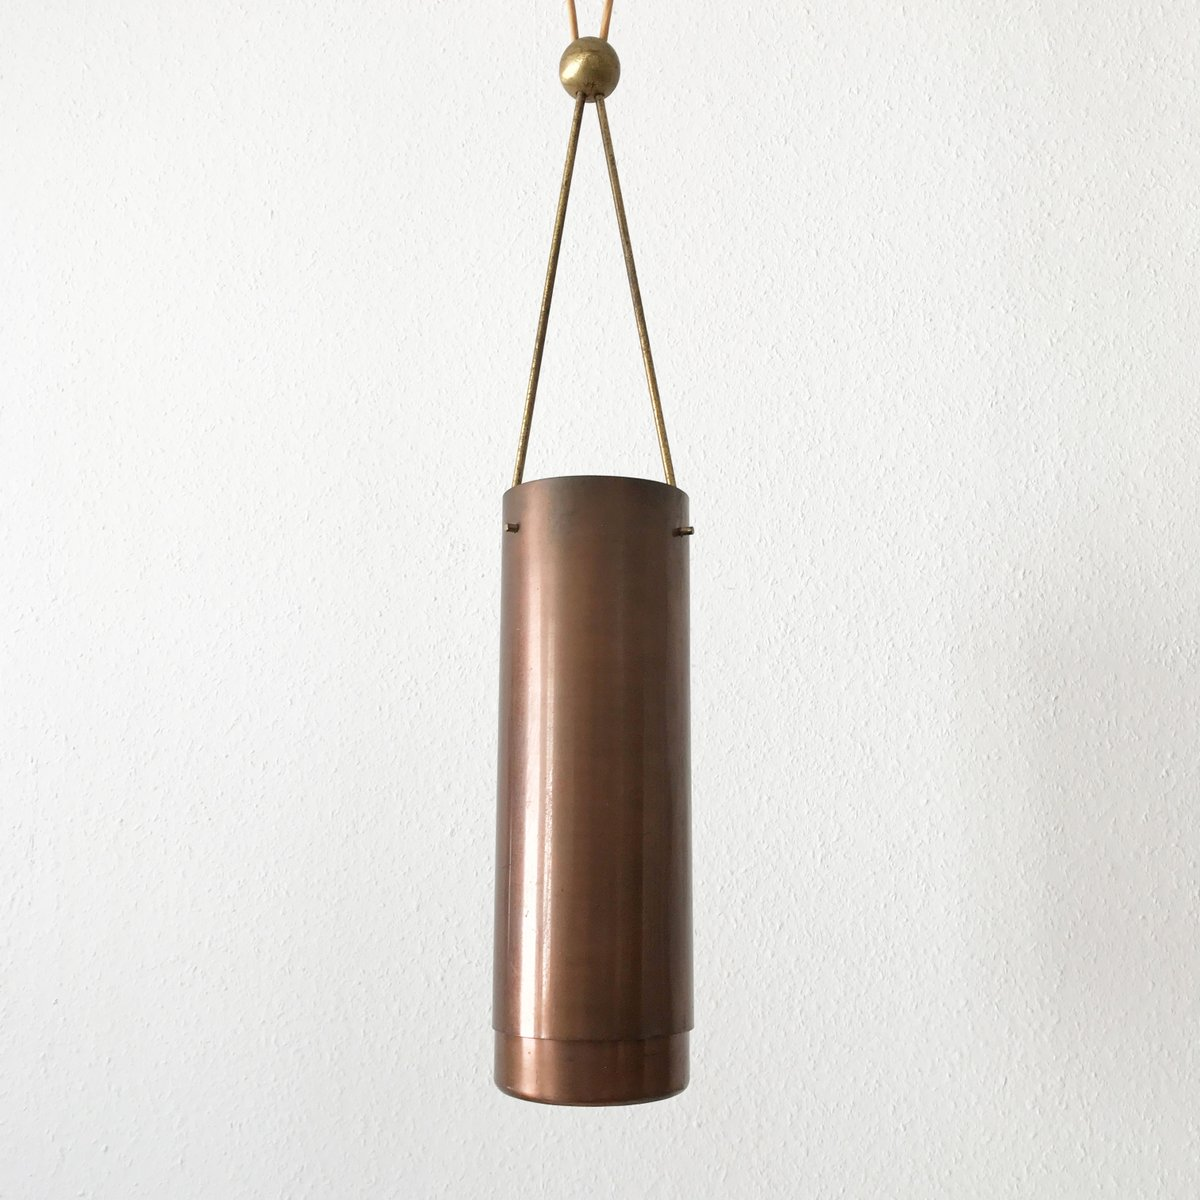 mid century modern cylindrical pendant light 1950s for sale at pamono. Black Bedroom Furniture Sets. Home Design Ideas